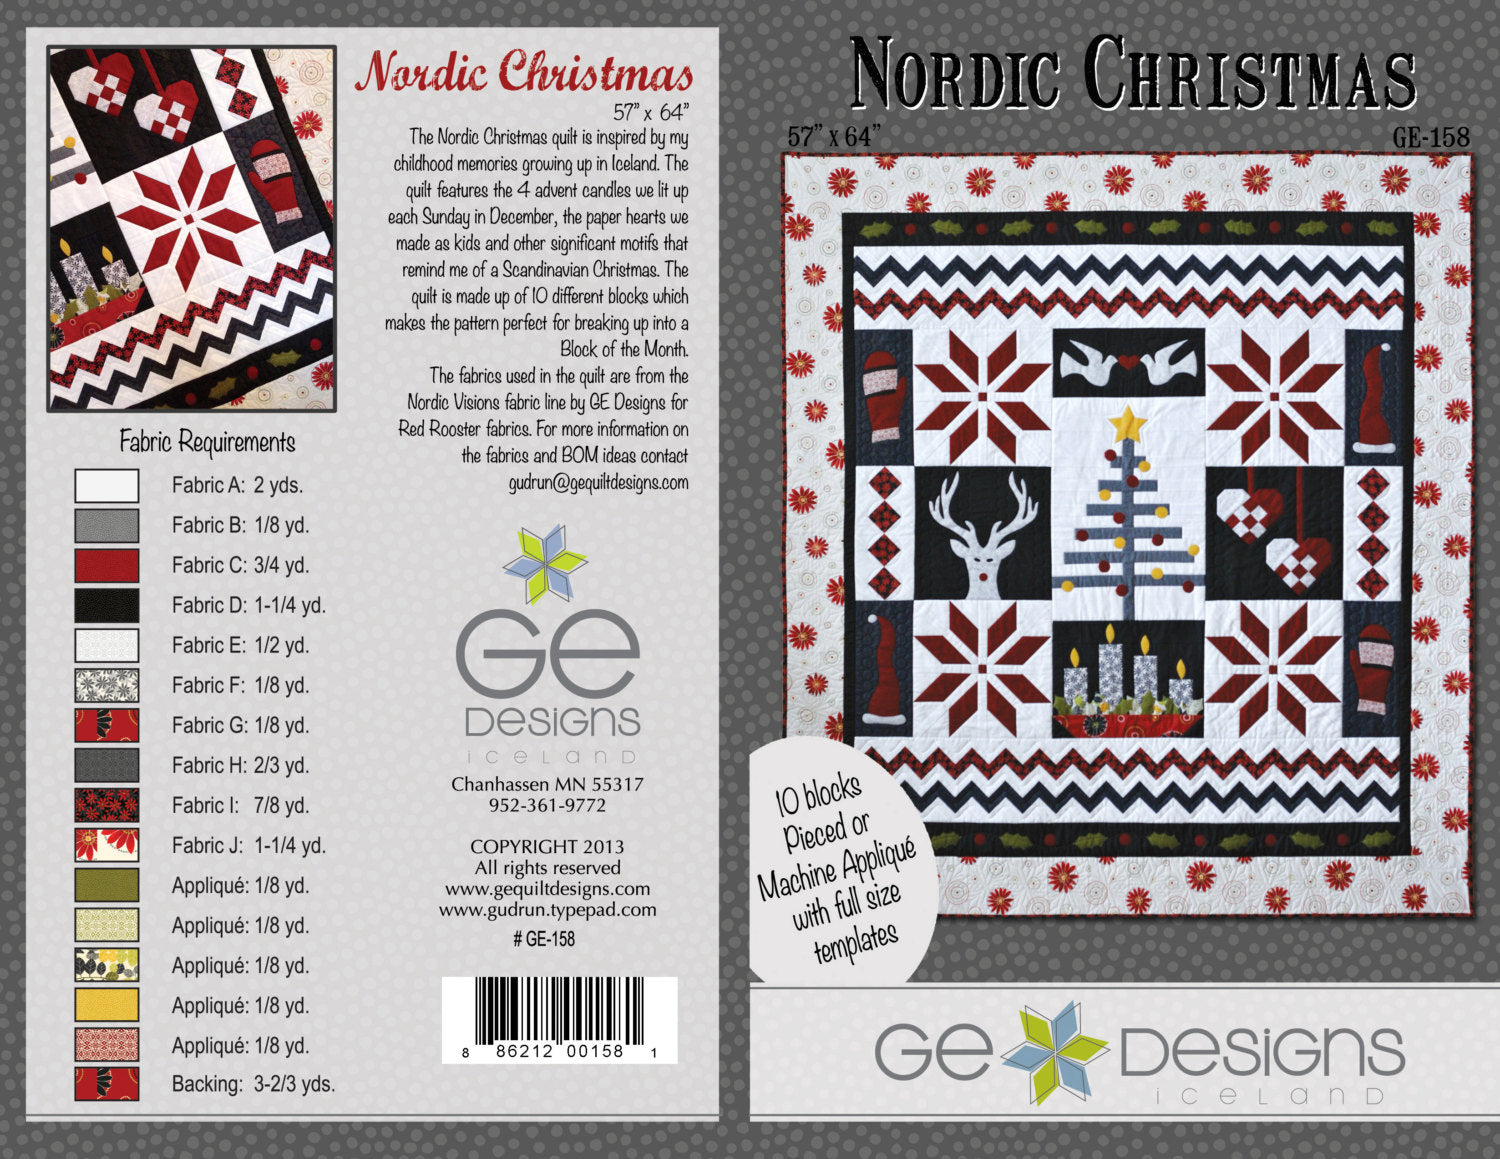 PDF Downloadable Patterns – Gedesigns